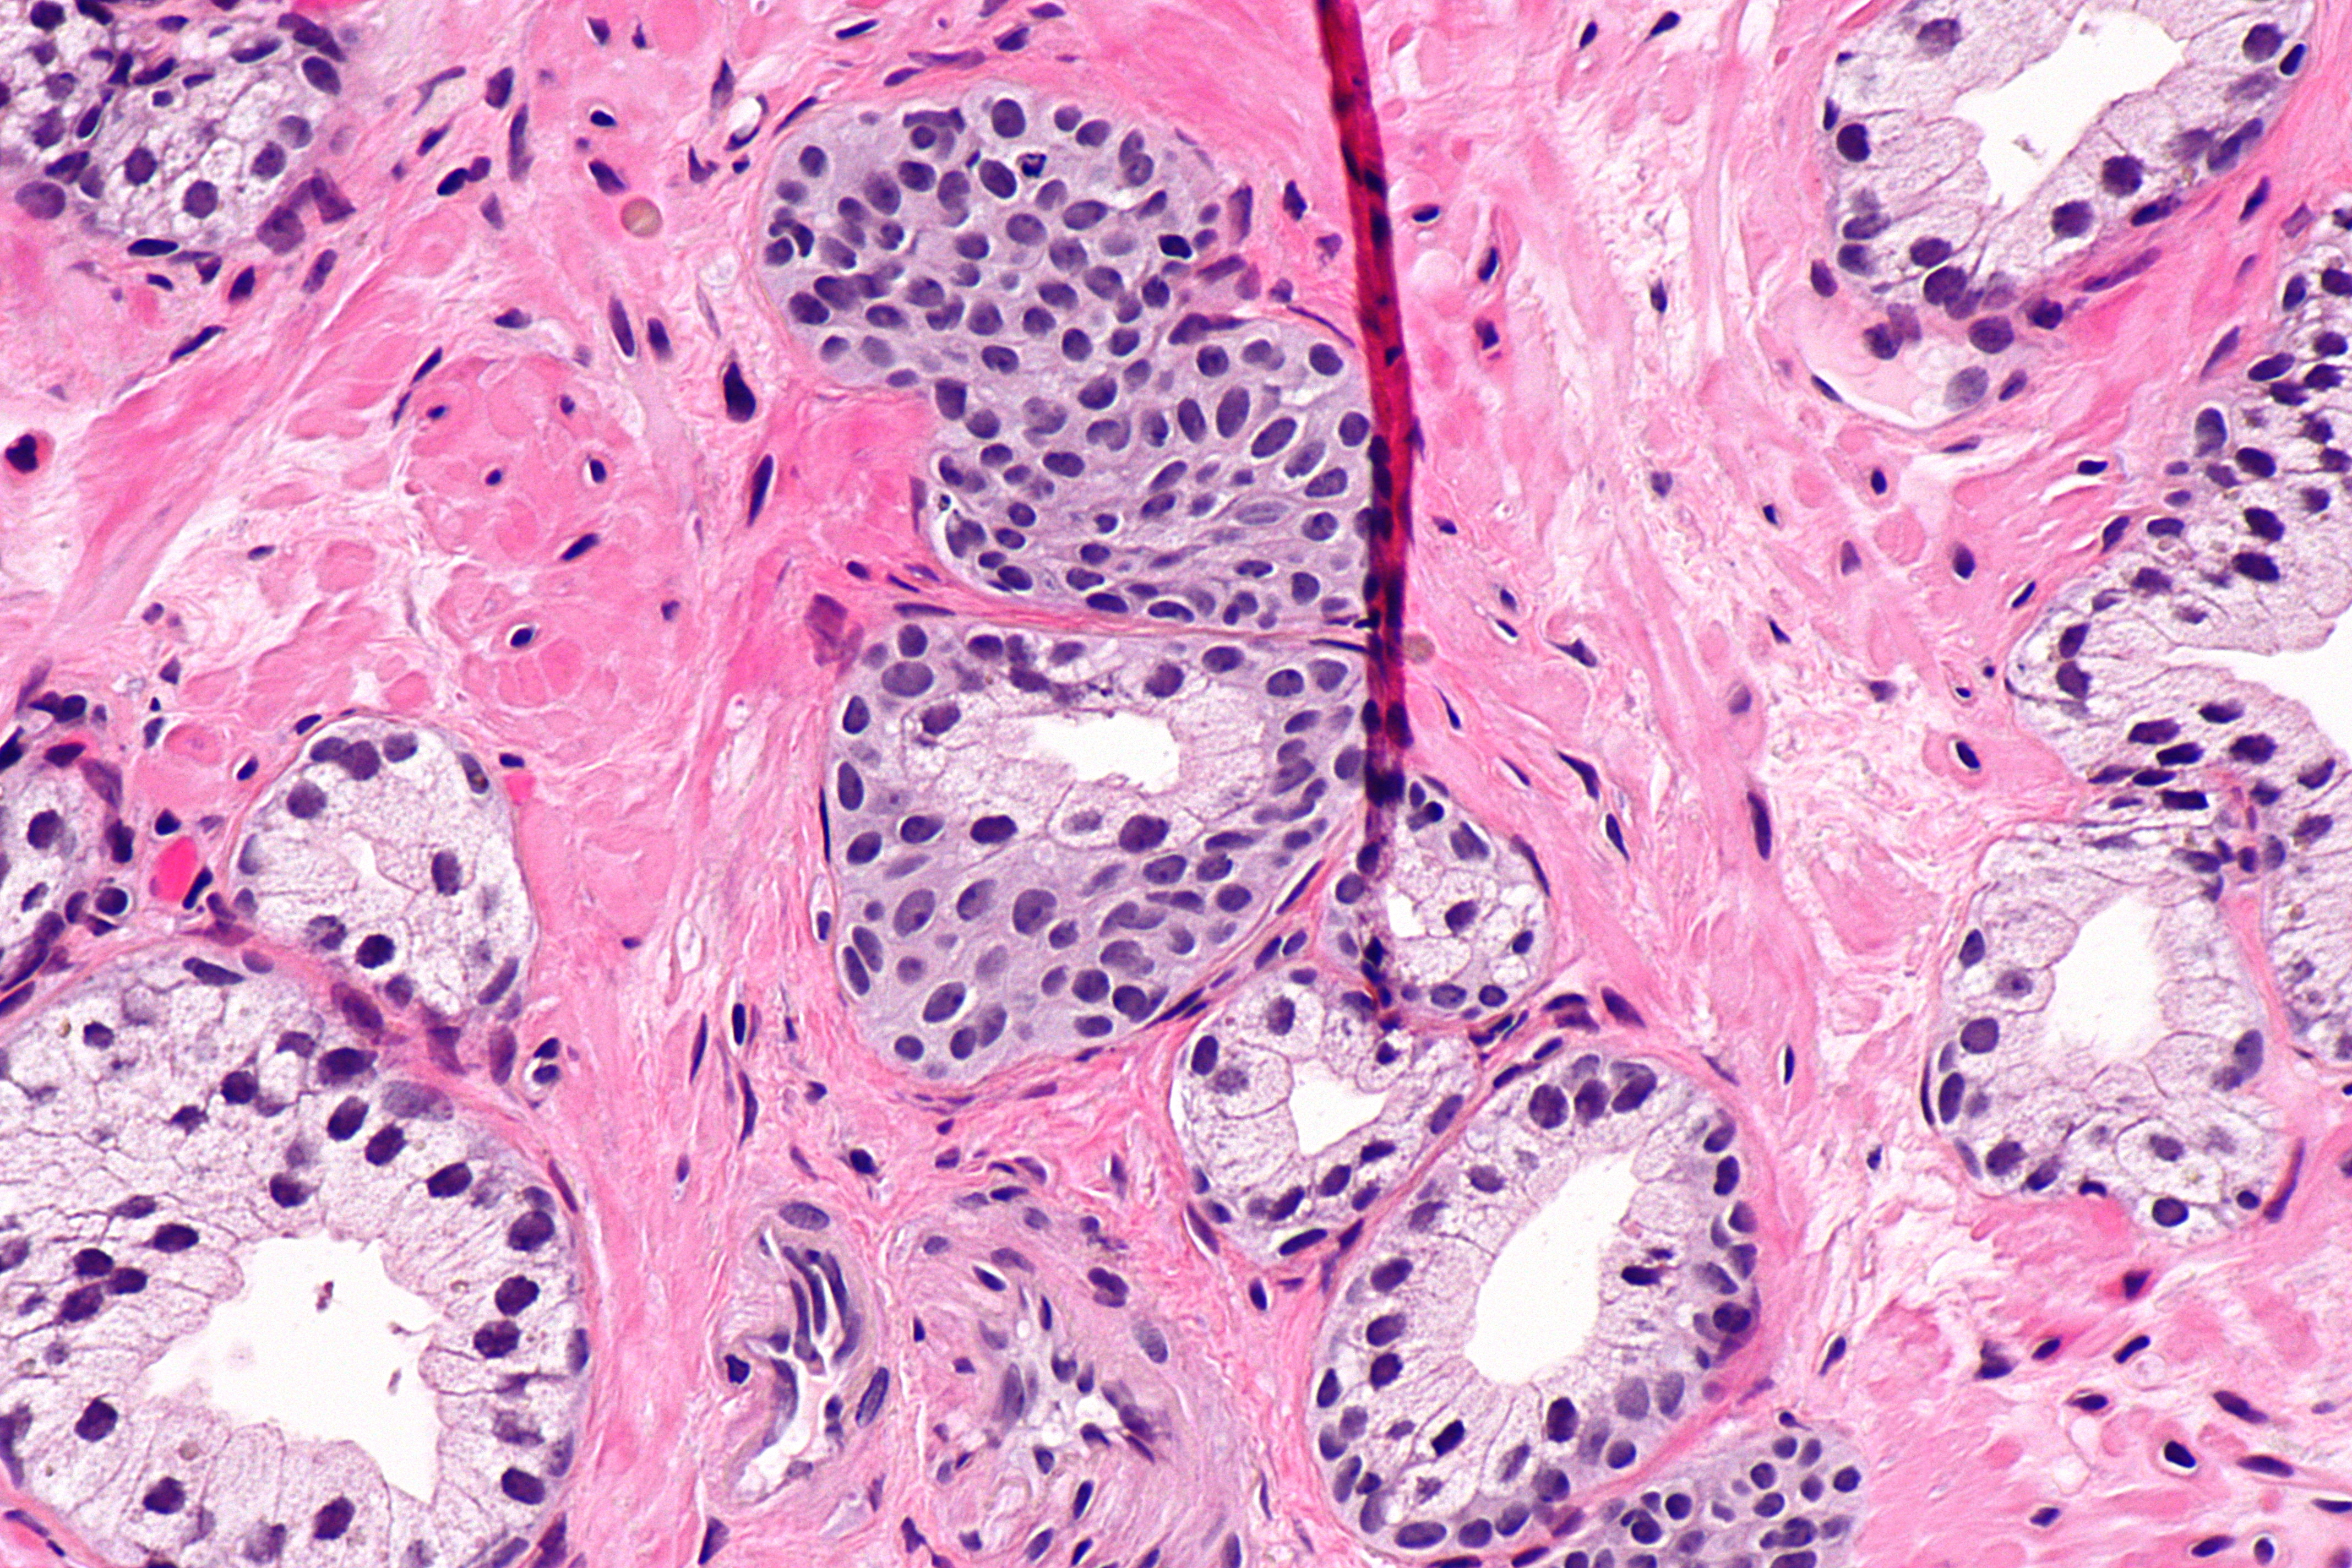 Cells That Build Bone By Secreting The Required Materials